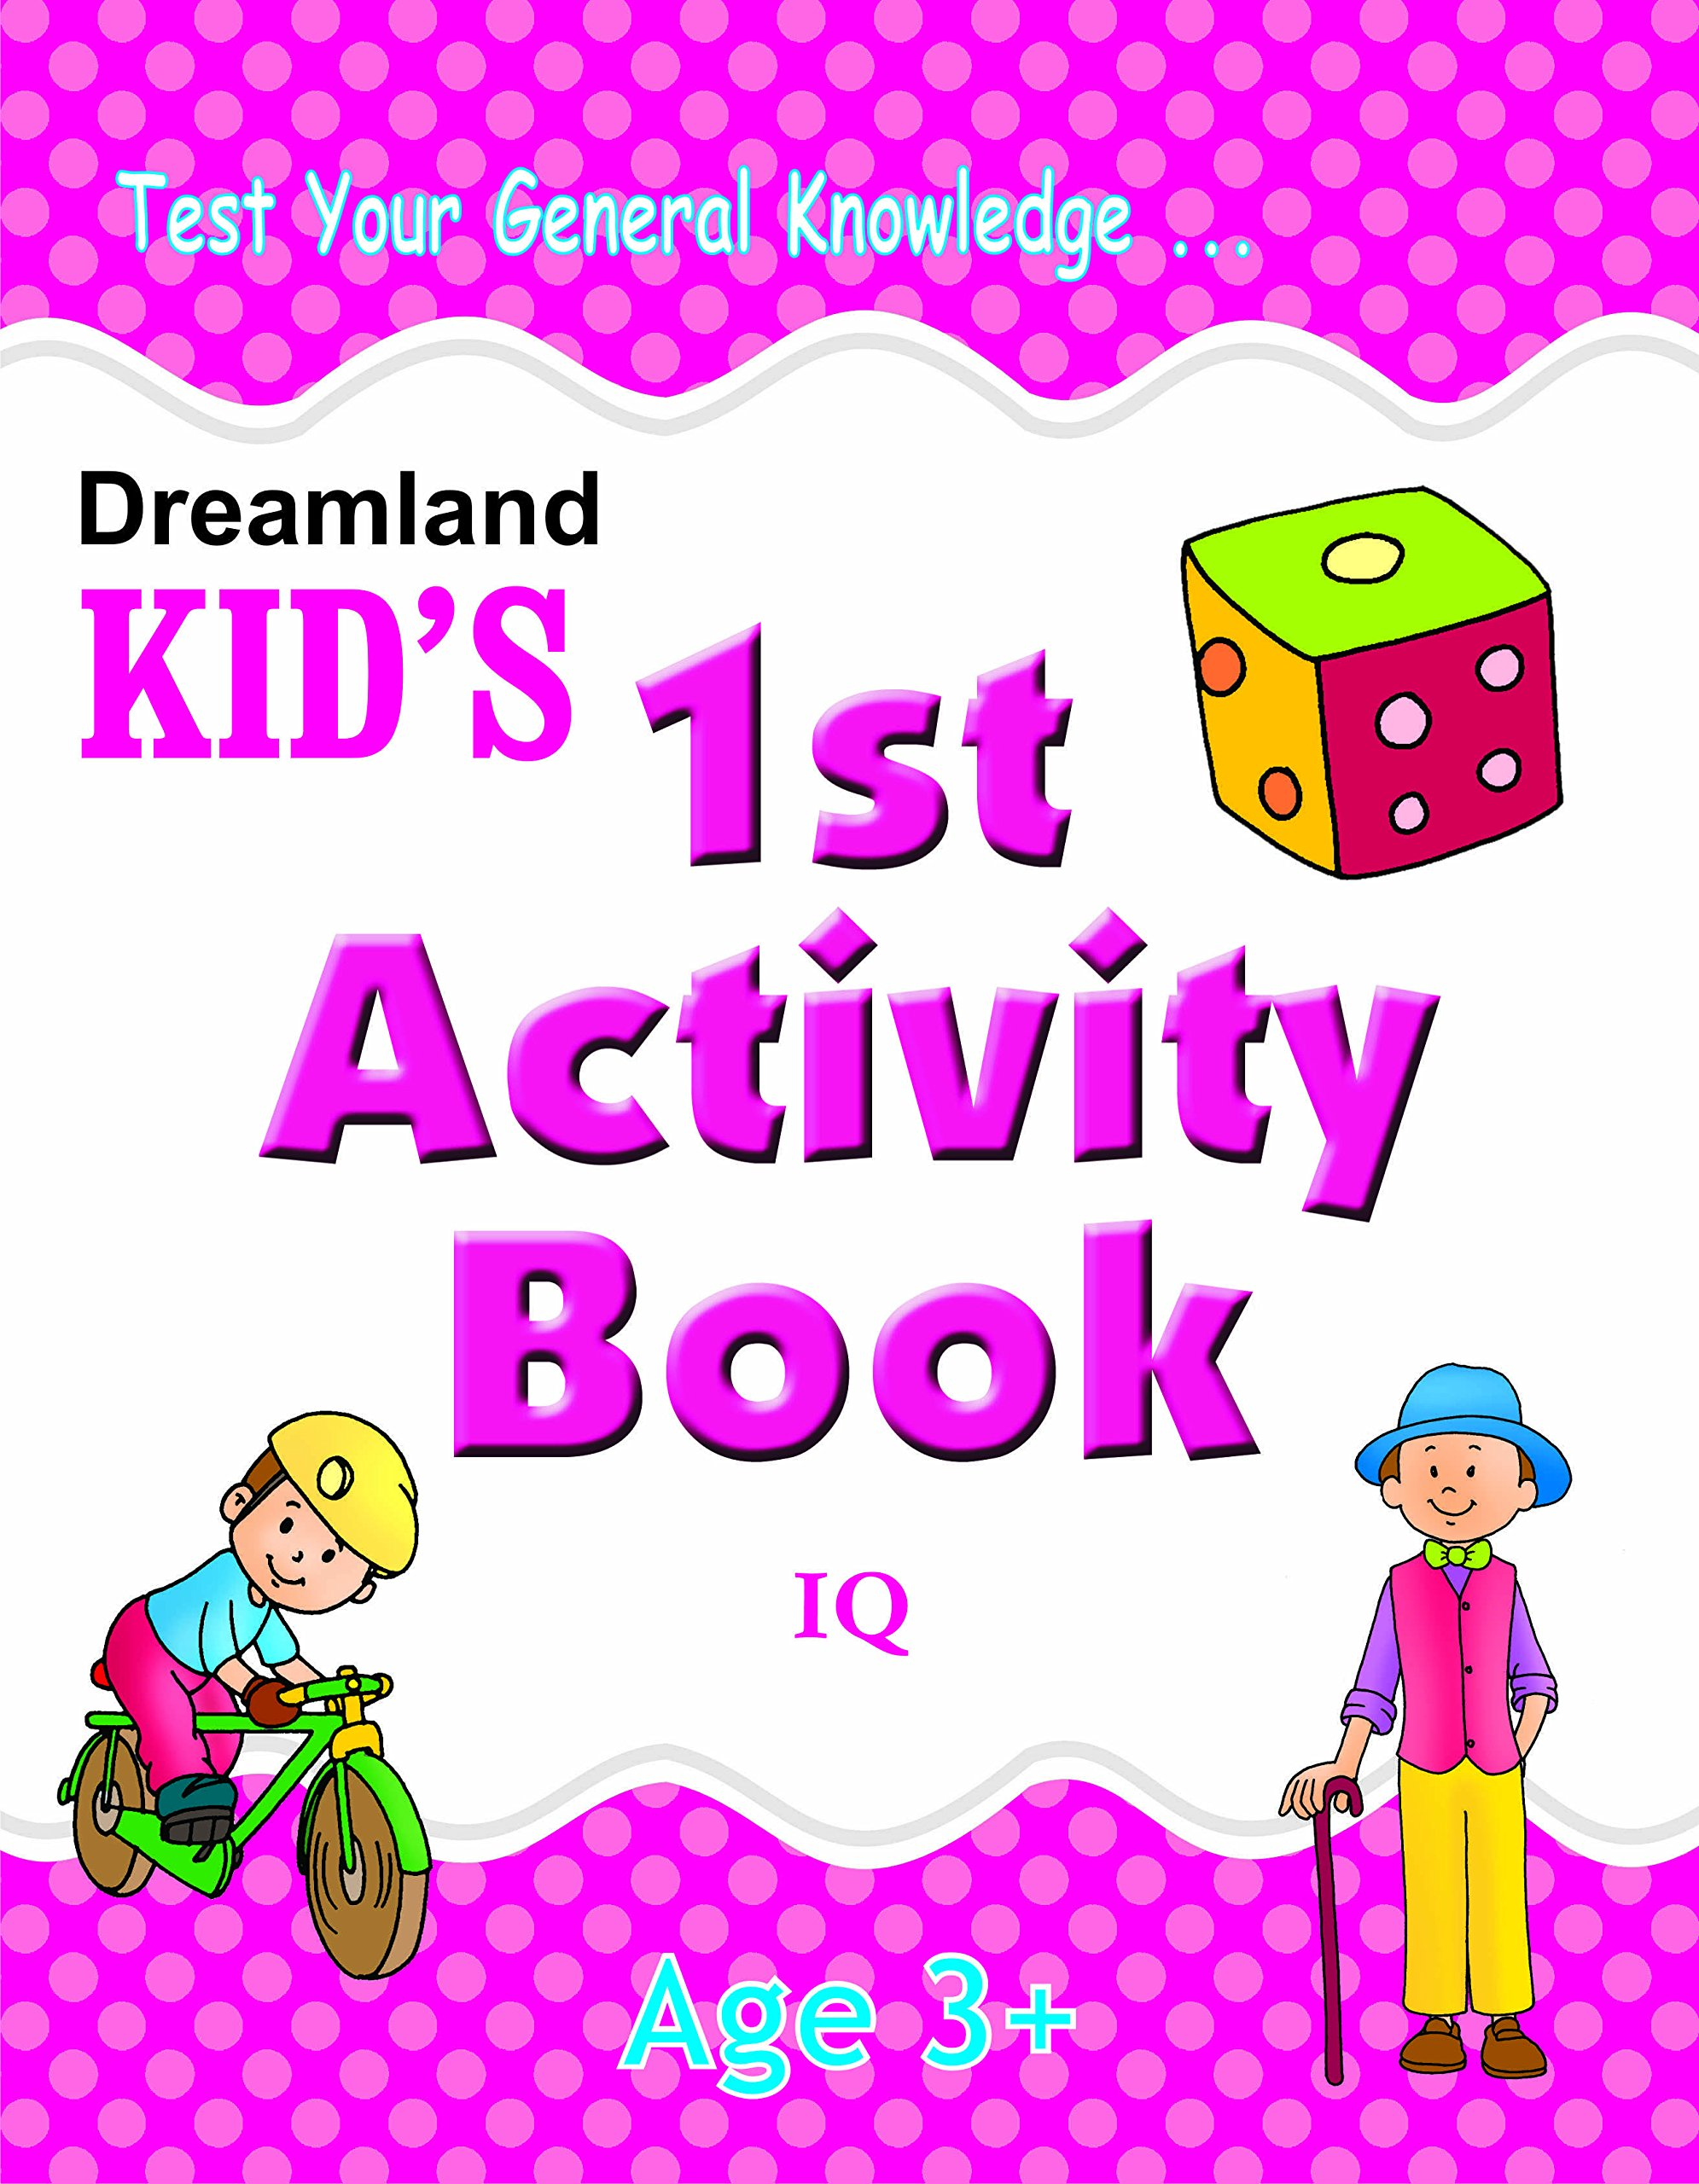 Buy 1st Activity Book - IQ (Ki...